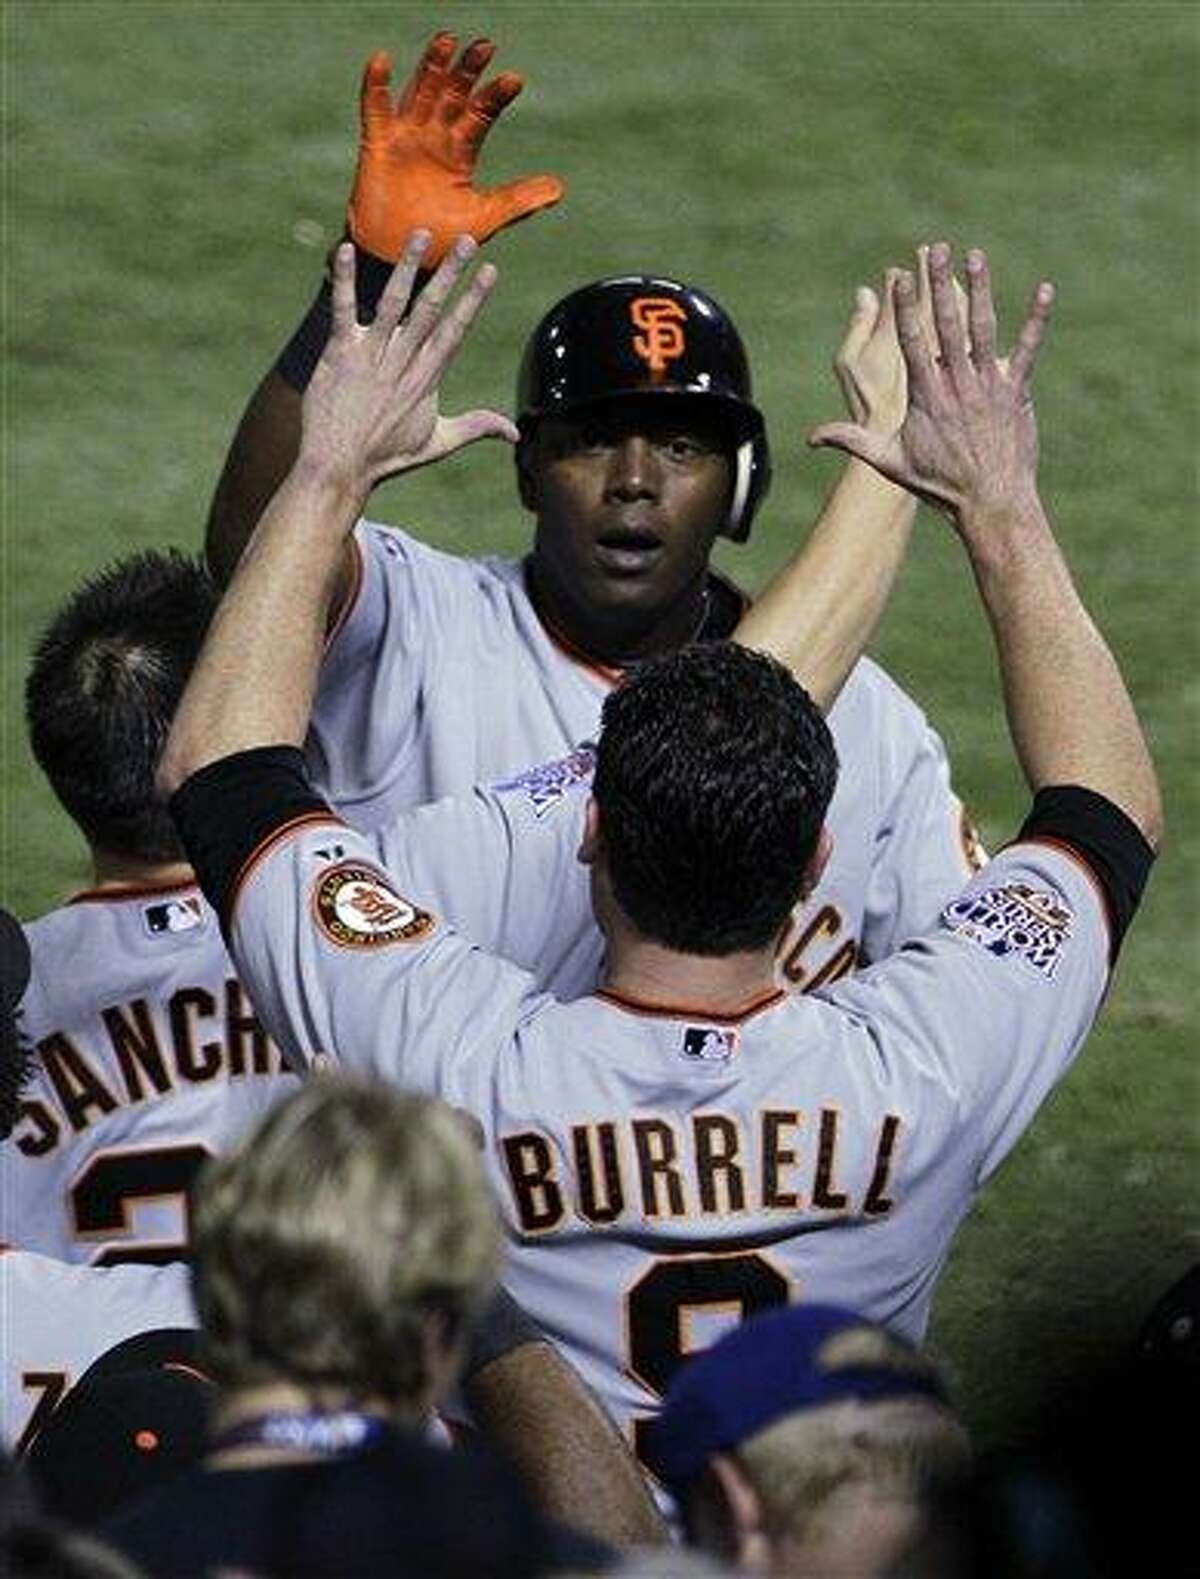 San Francisco Giants' Edgar Renteria, right, is congratulated by Pat Burrell after Renteria hit a three-run home run during the seventh inning of Game 5 of the World Series against the Texas Rangers Monday, in Arlington, Texas. (AP Photo/Tony Gutierrez)